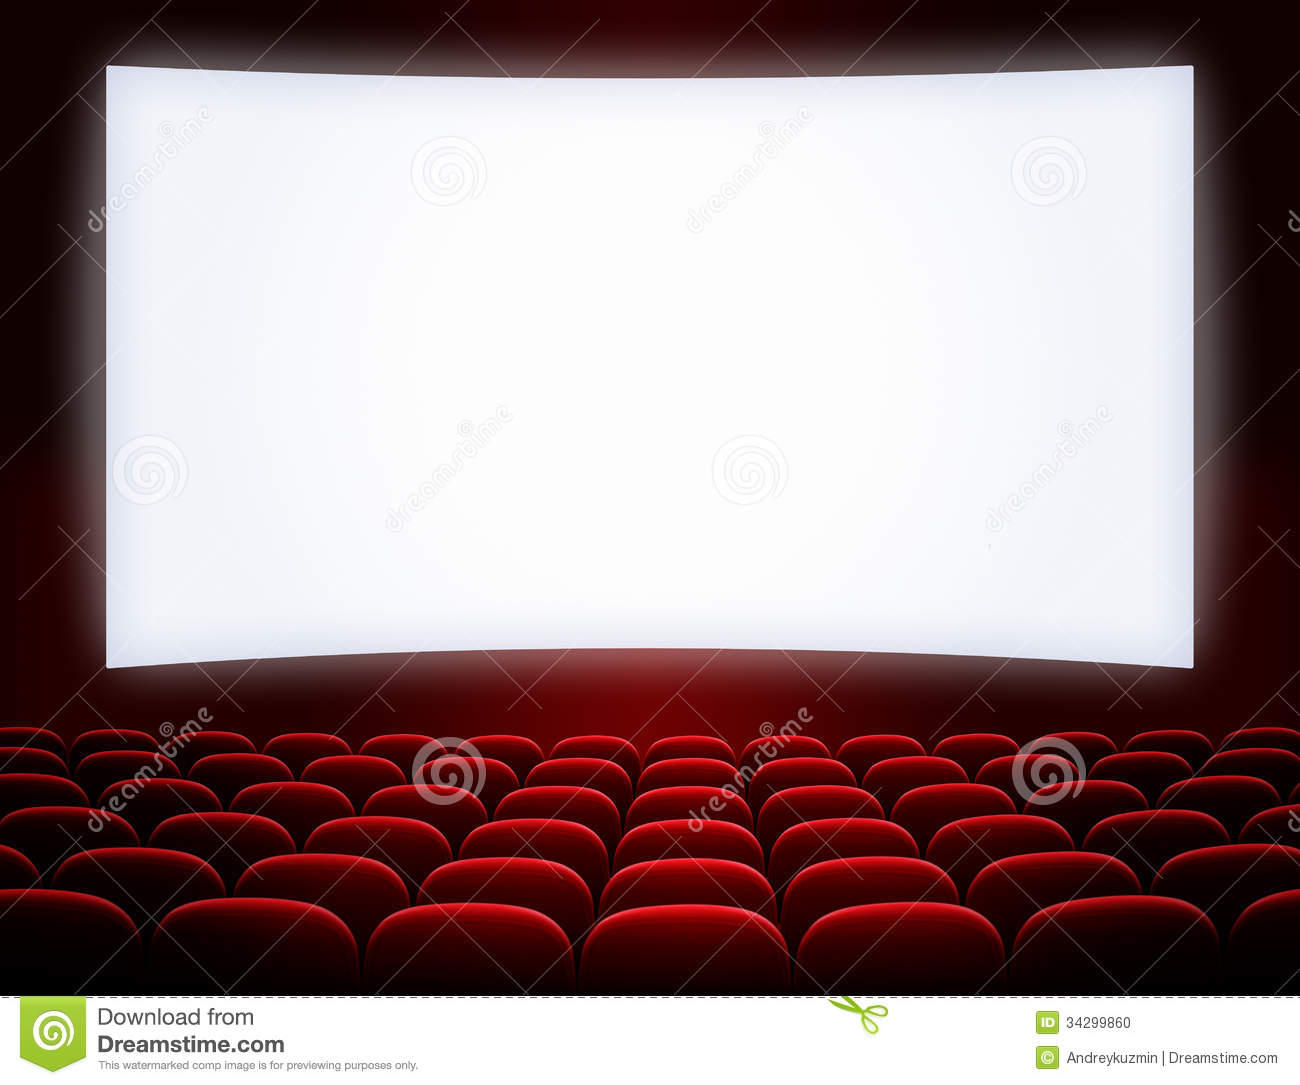 movie screen clipart clipart suggest outdoor movie screen clipart outdoor movie screen clipart